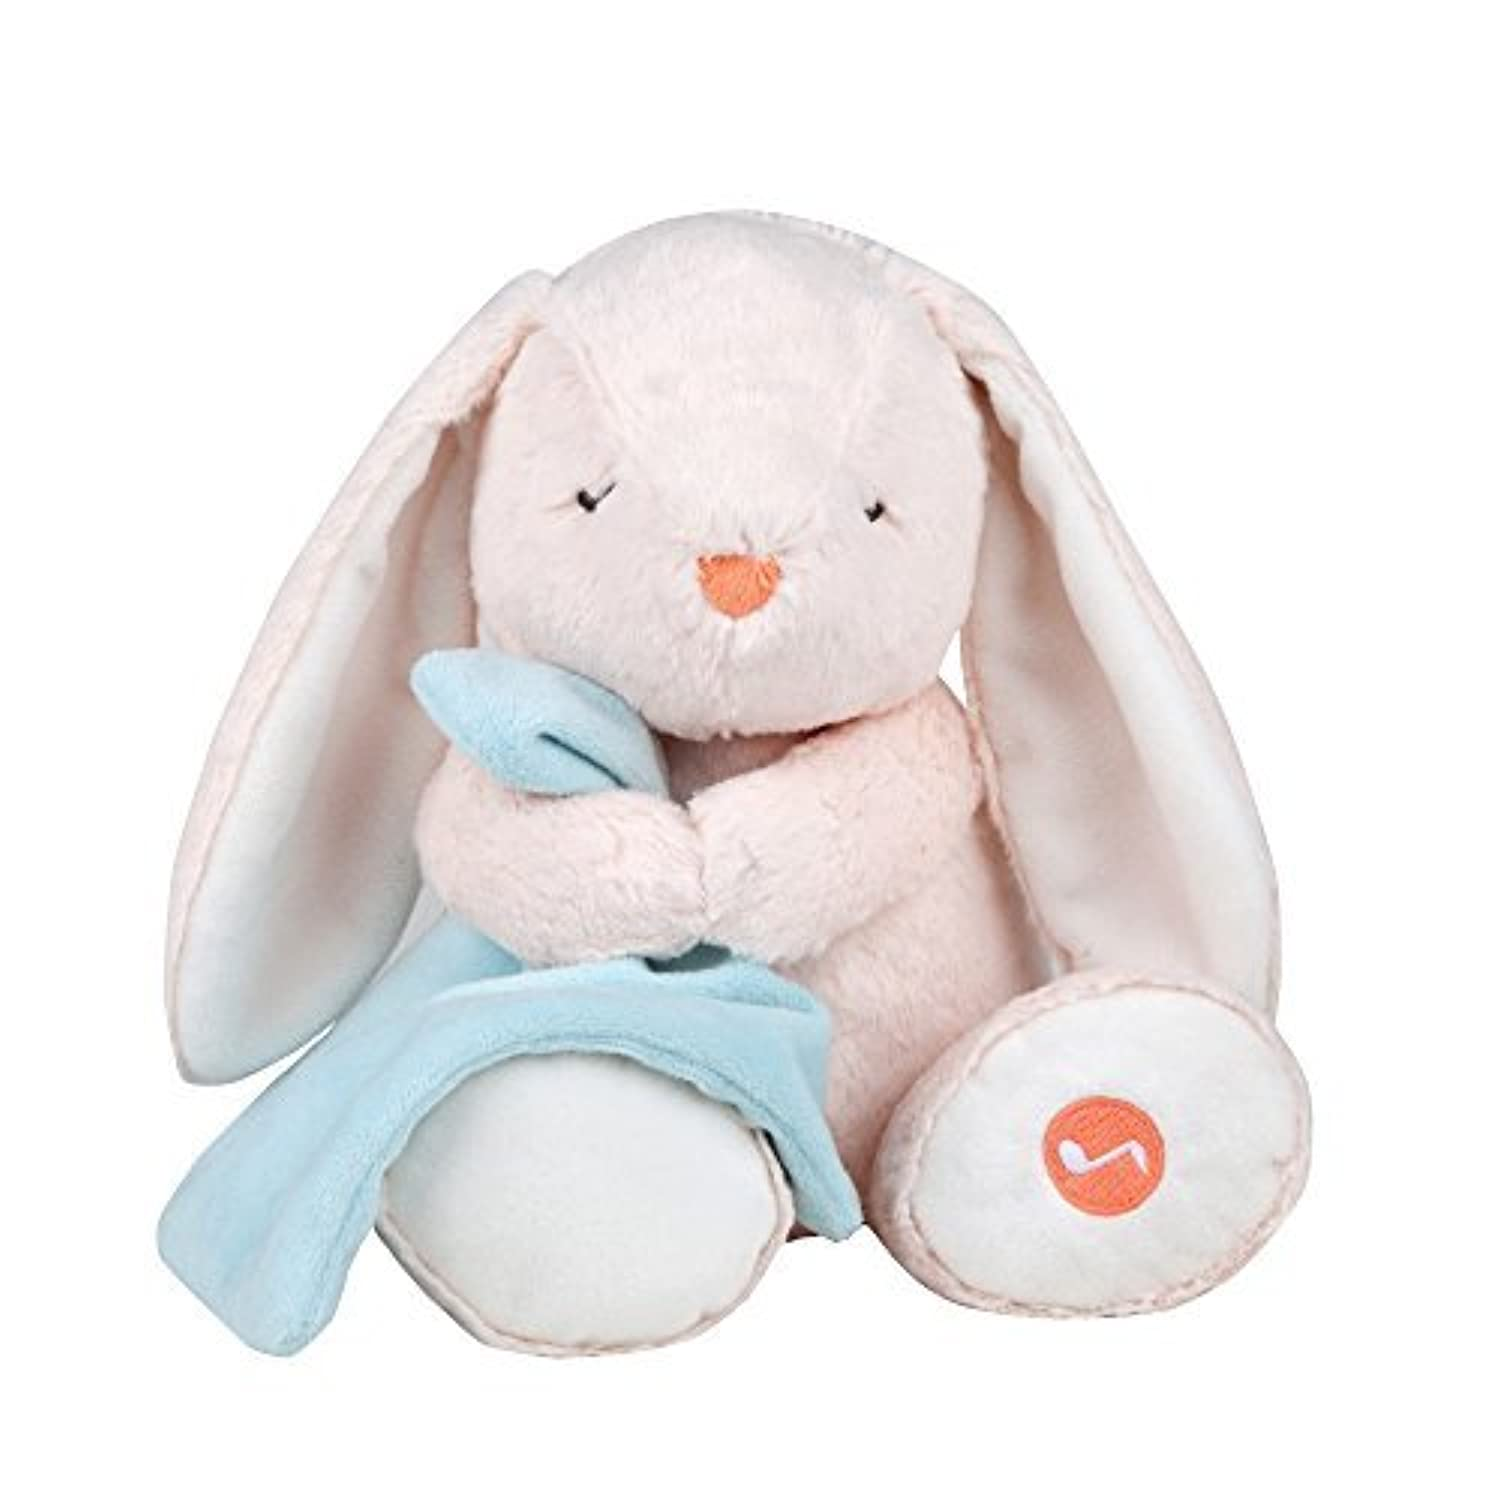 Carter's Musical Soother Bunny, Pink by Carters, Baby Starters, Candlesticks [並行輸入品]